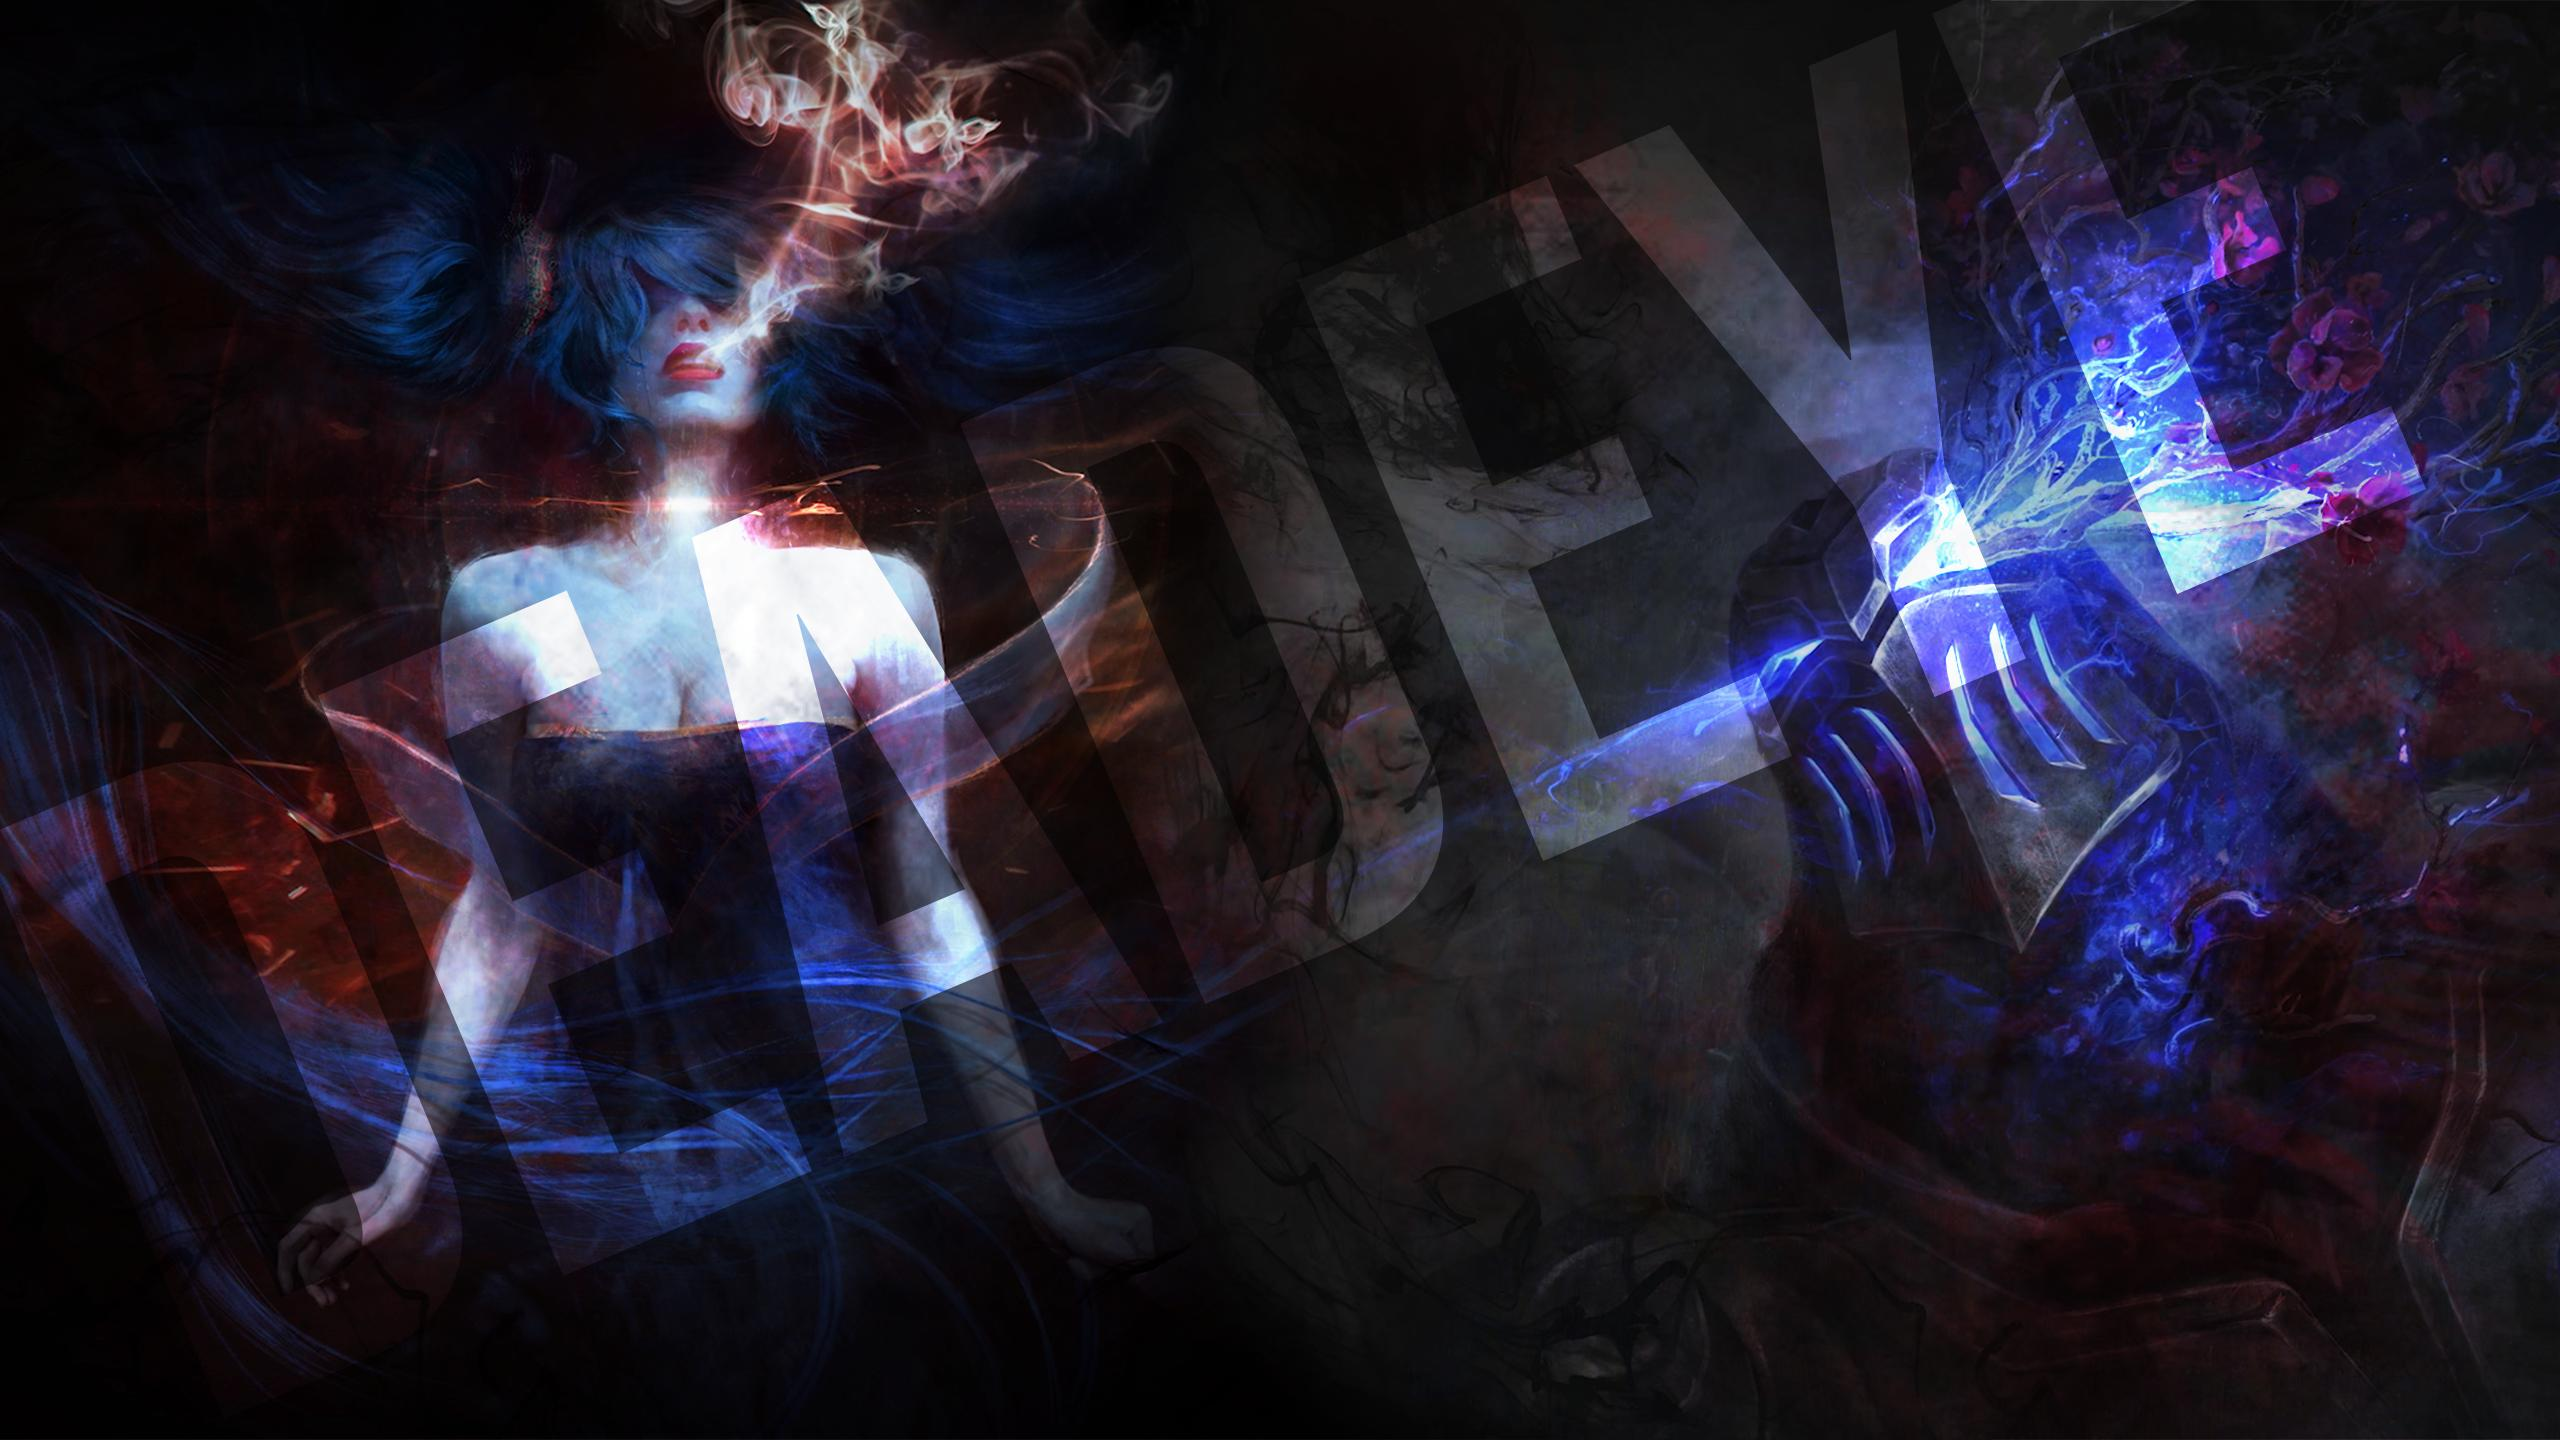 Sona And Zed With Text - Zed Champion 2560 X 1440 , HD Wallpaper & Backgrounds